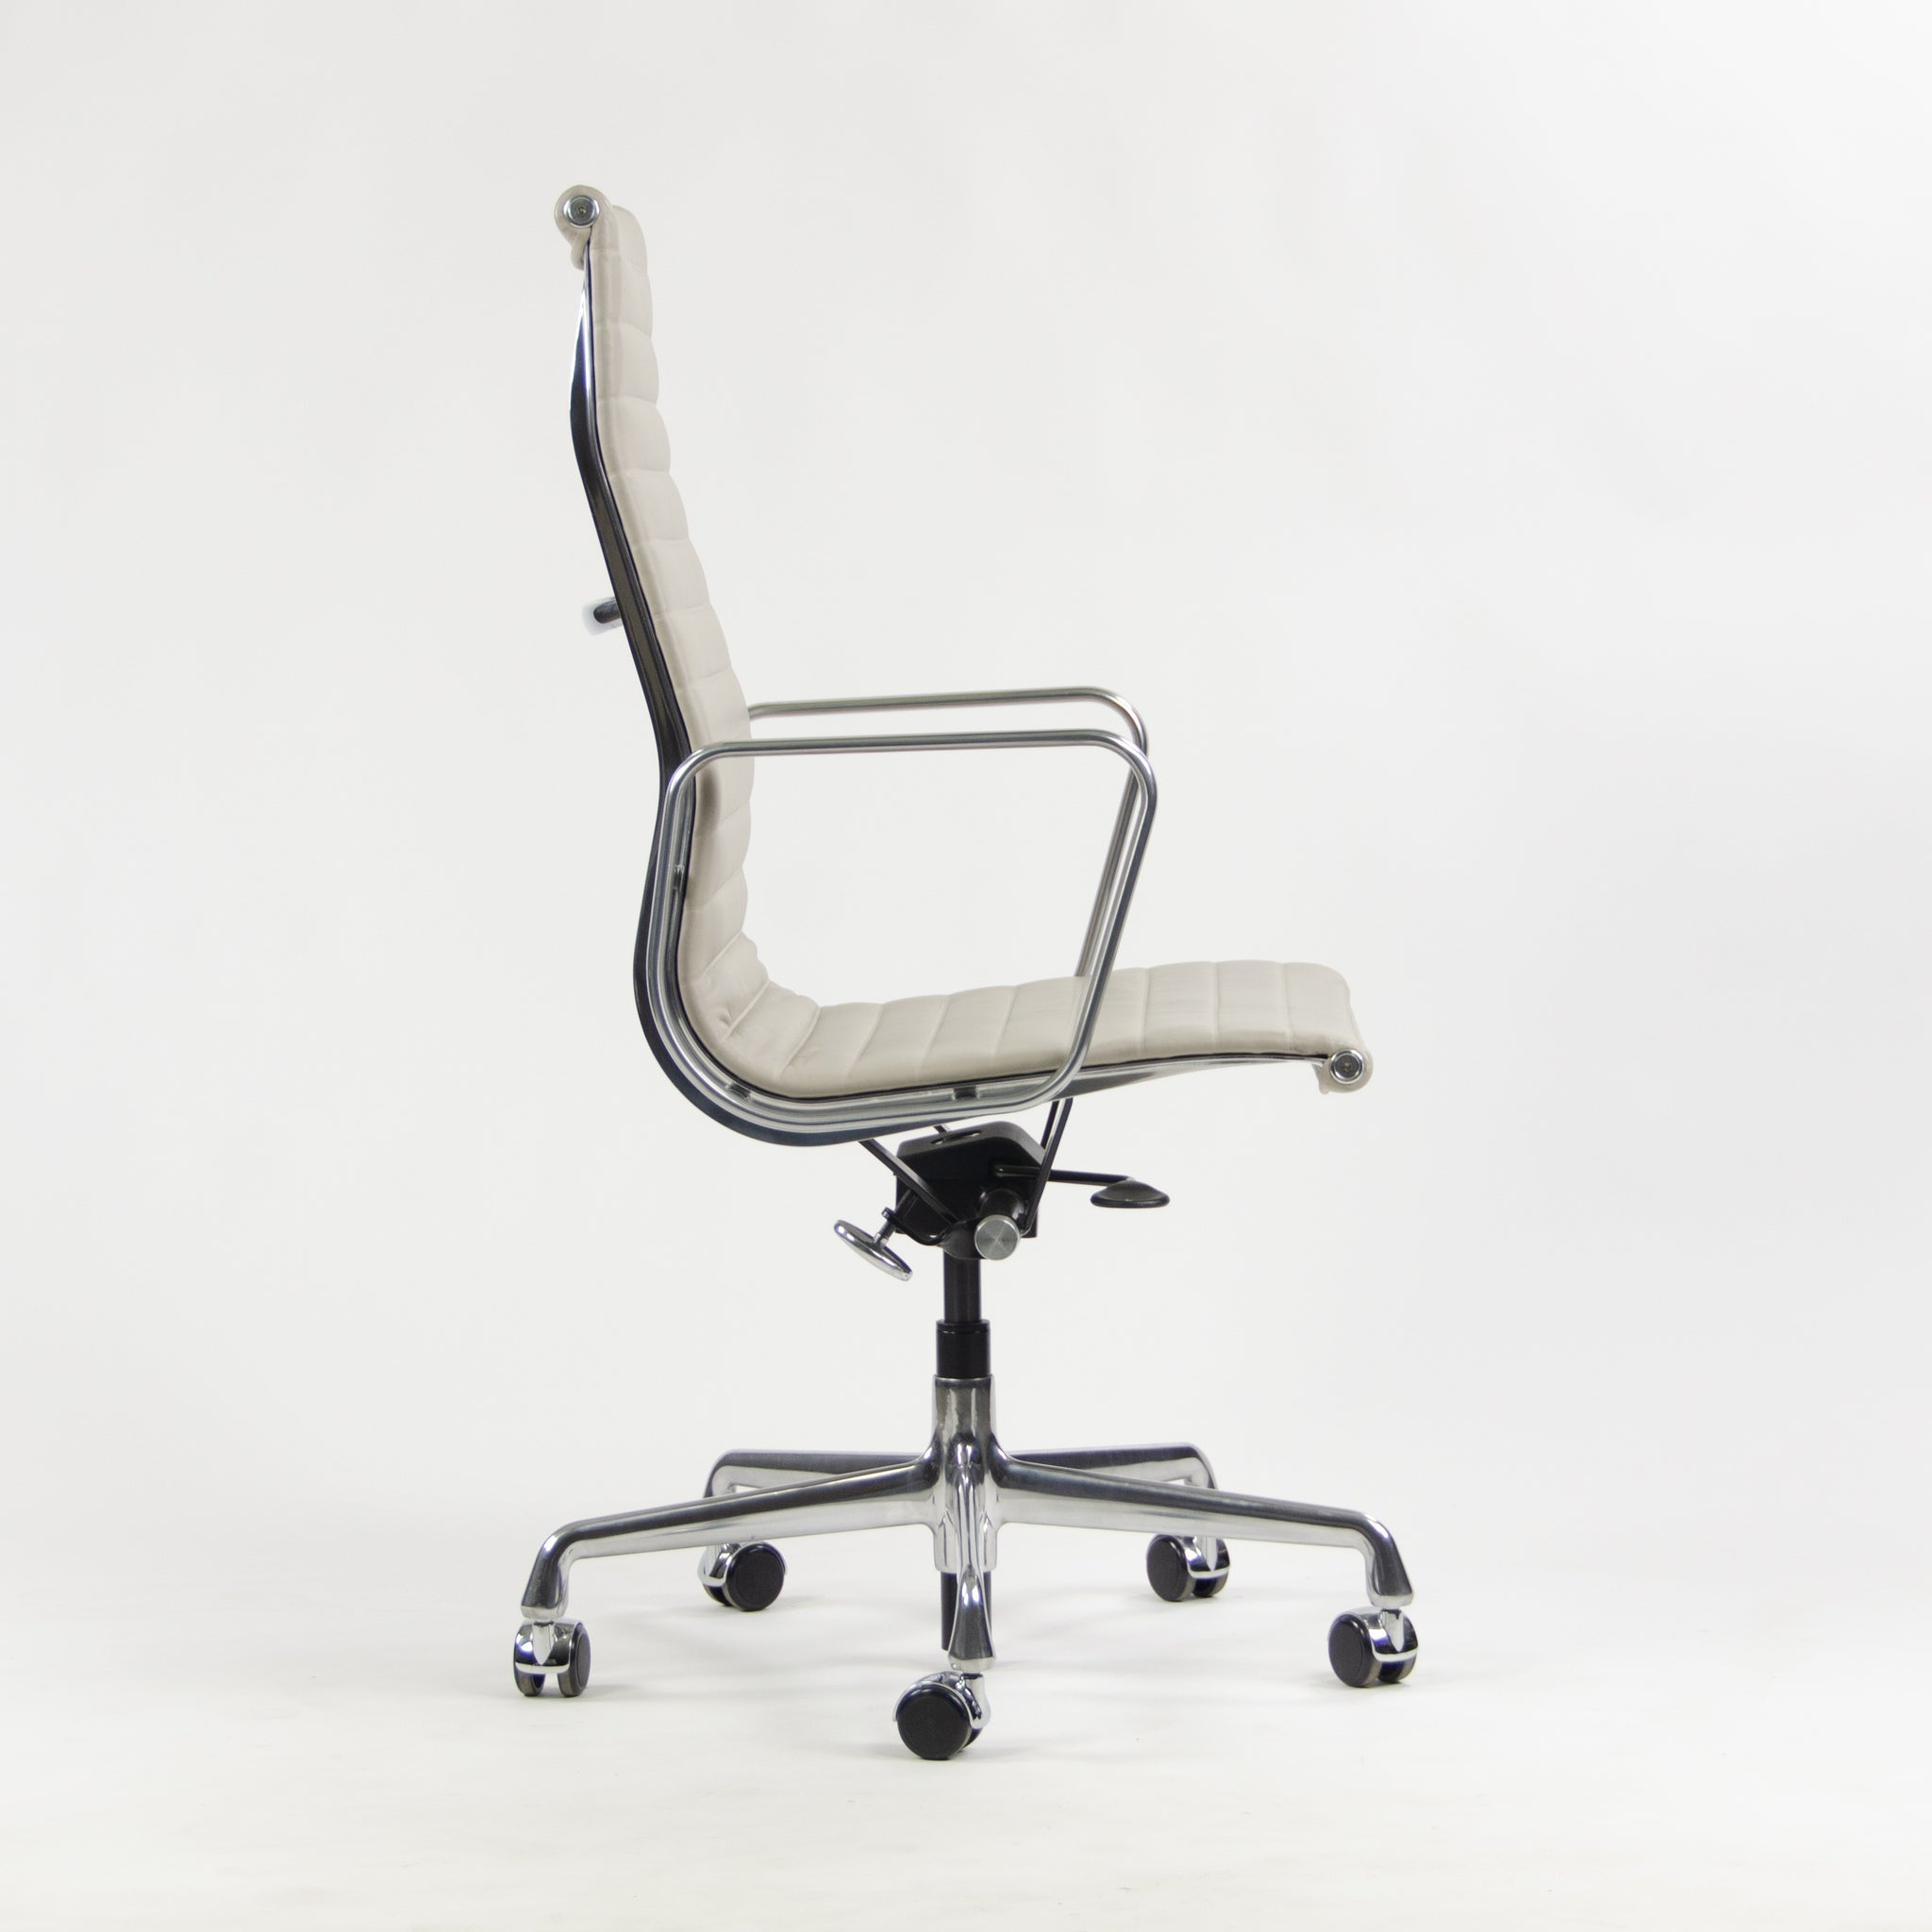 Herman Miller High Executive Aluminum Group Desk Chair Sets Available 2015 Production